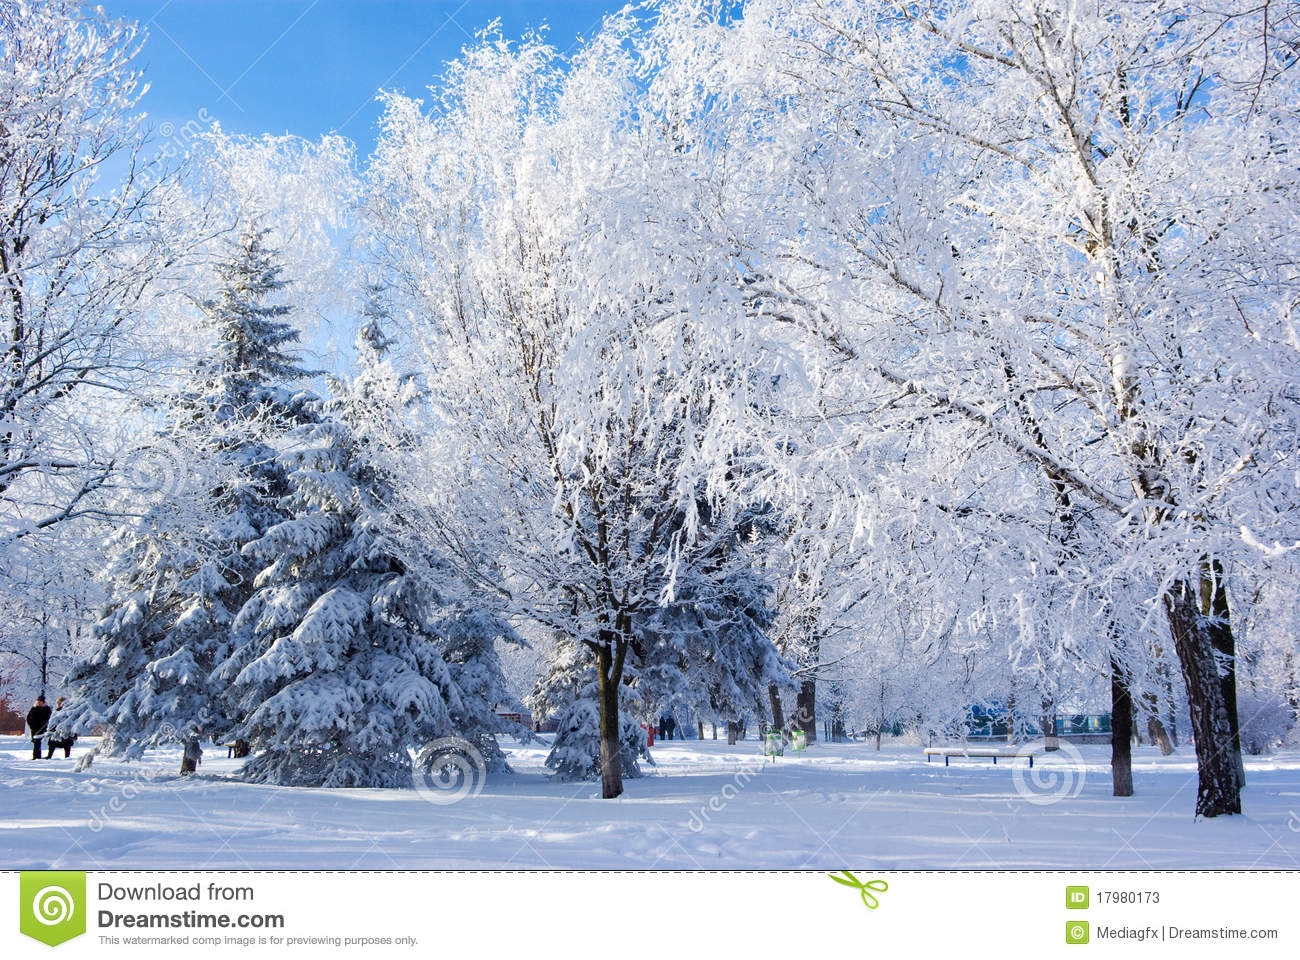 Fall Landscape Wallpaper Winter Nature Stock Image Image Of Light Outdoor